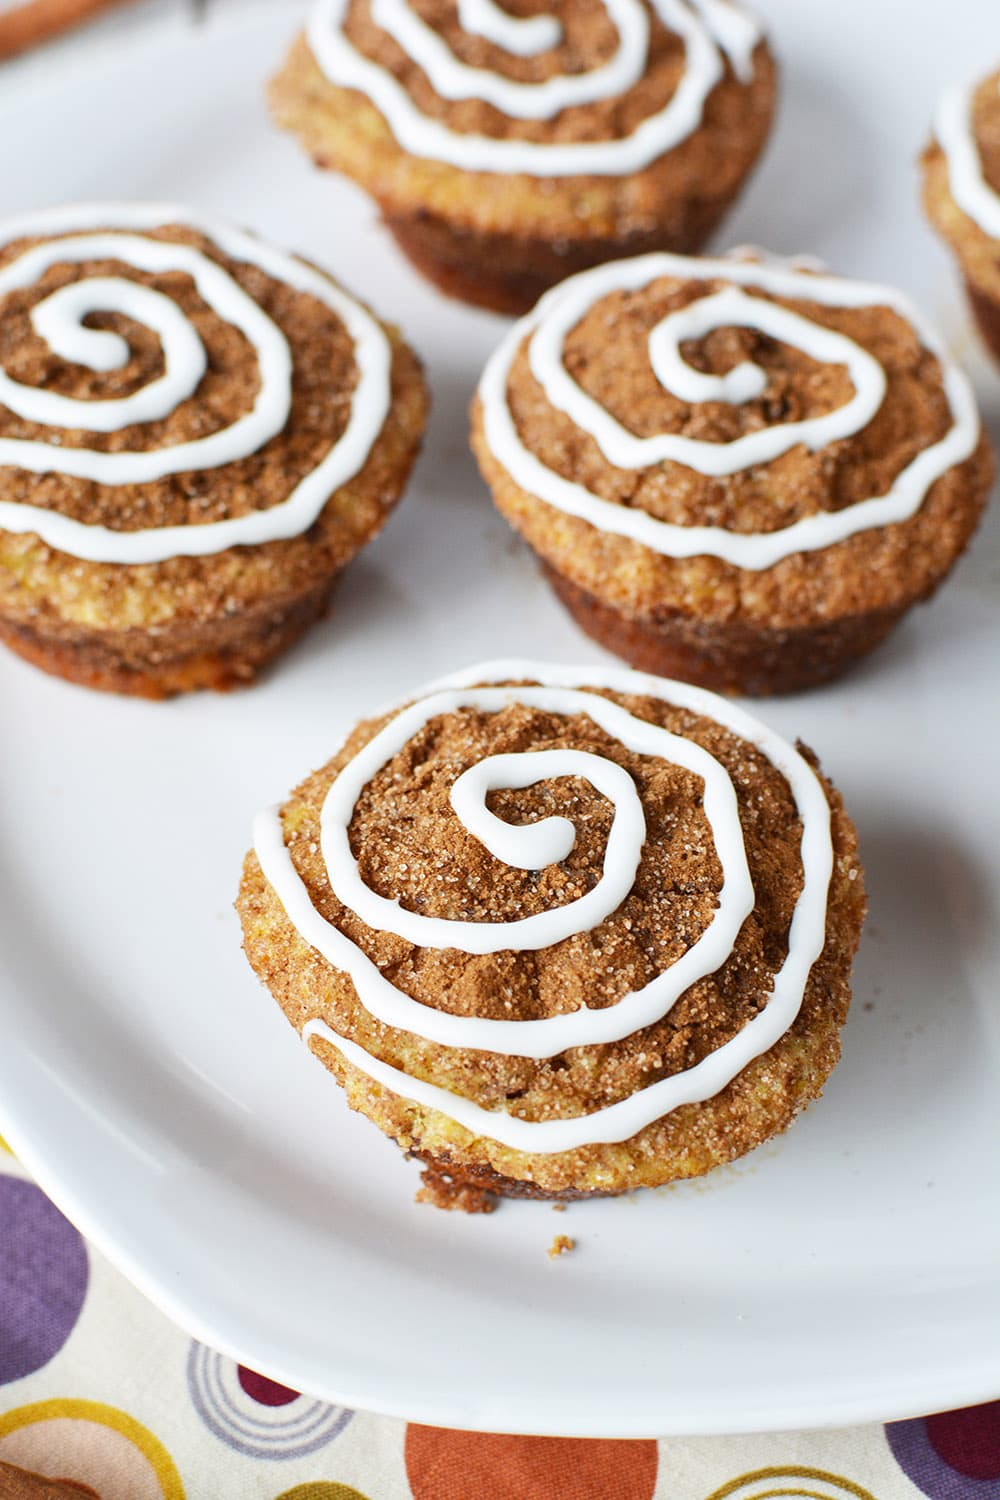 Cinnamon muffins on a plate. Cinnamon topping and icing swirl to give cinnamon roll appearance.